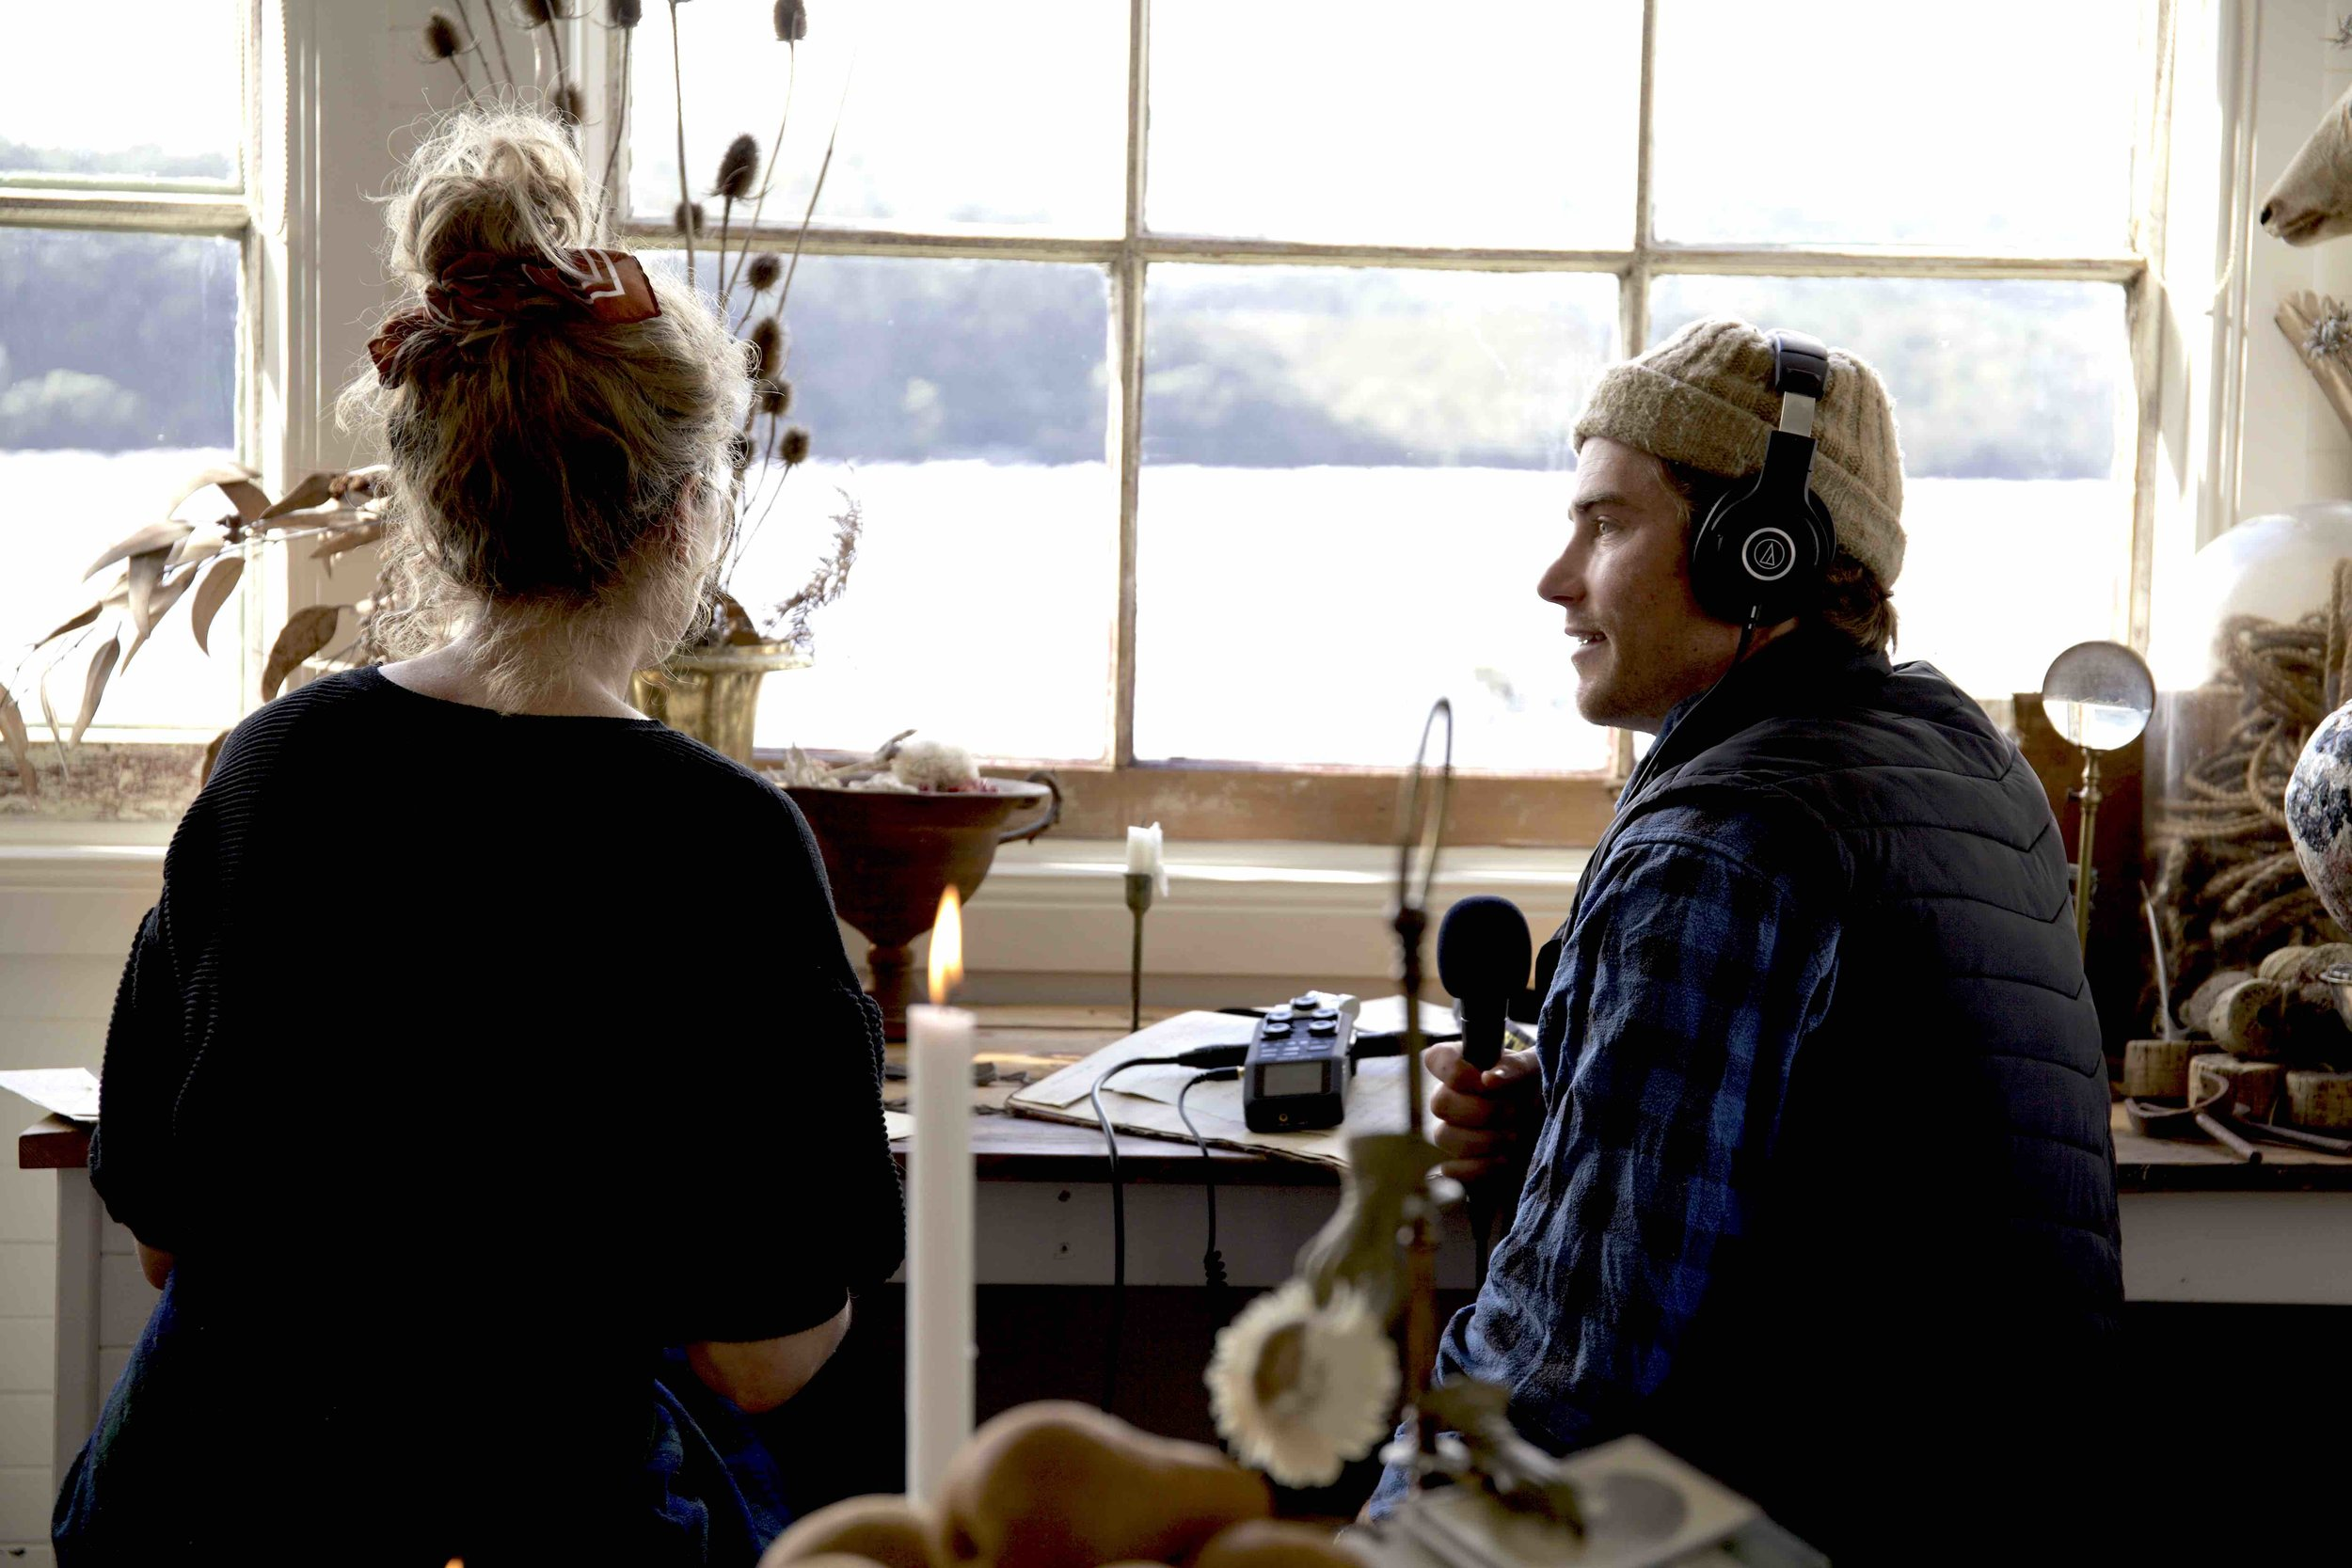 Sarah Andrews on The Roving Mic by Hayden Quinn